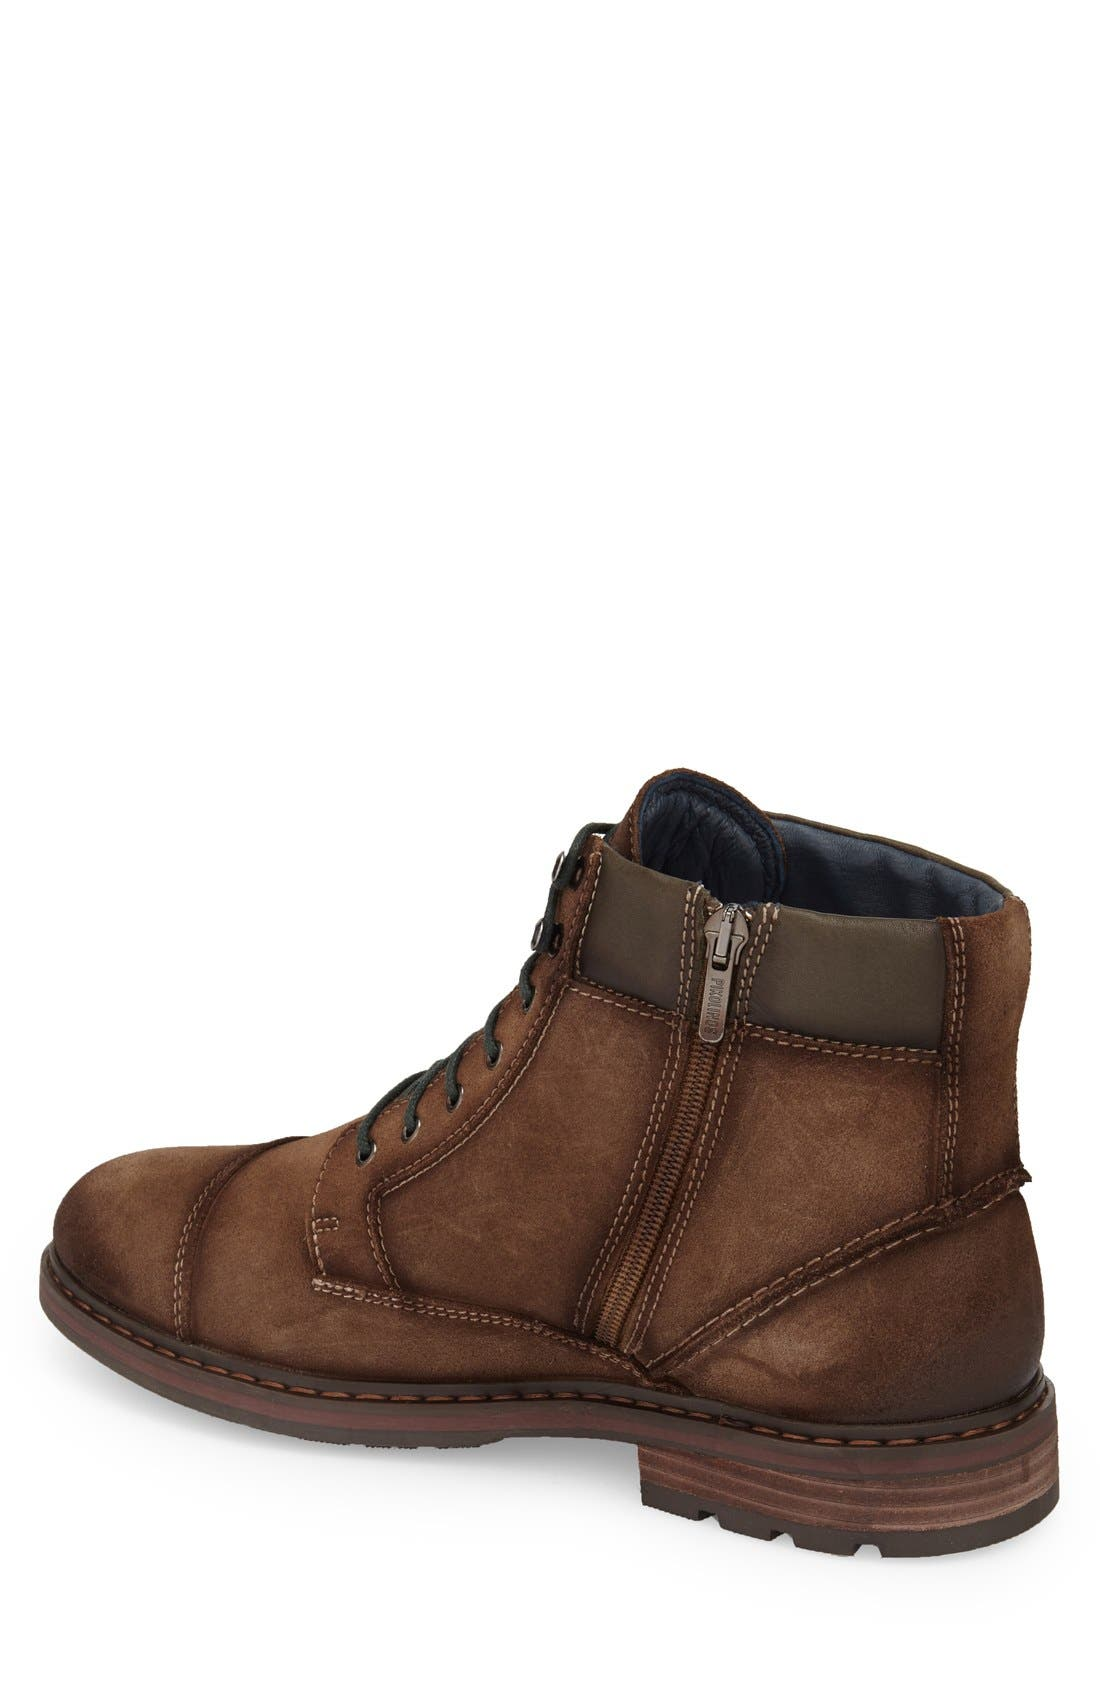 'Cacers' Lace-Up Zip Boot,                             Alternate thumbnail 2, color,                             Brown Leather